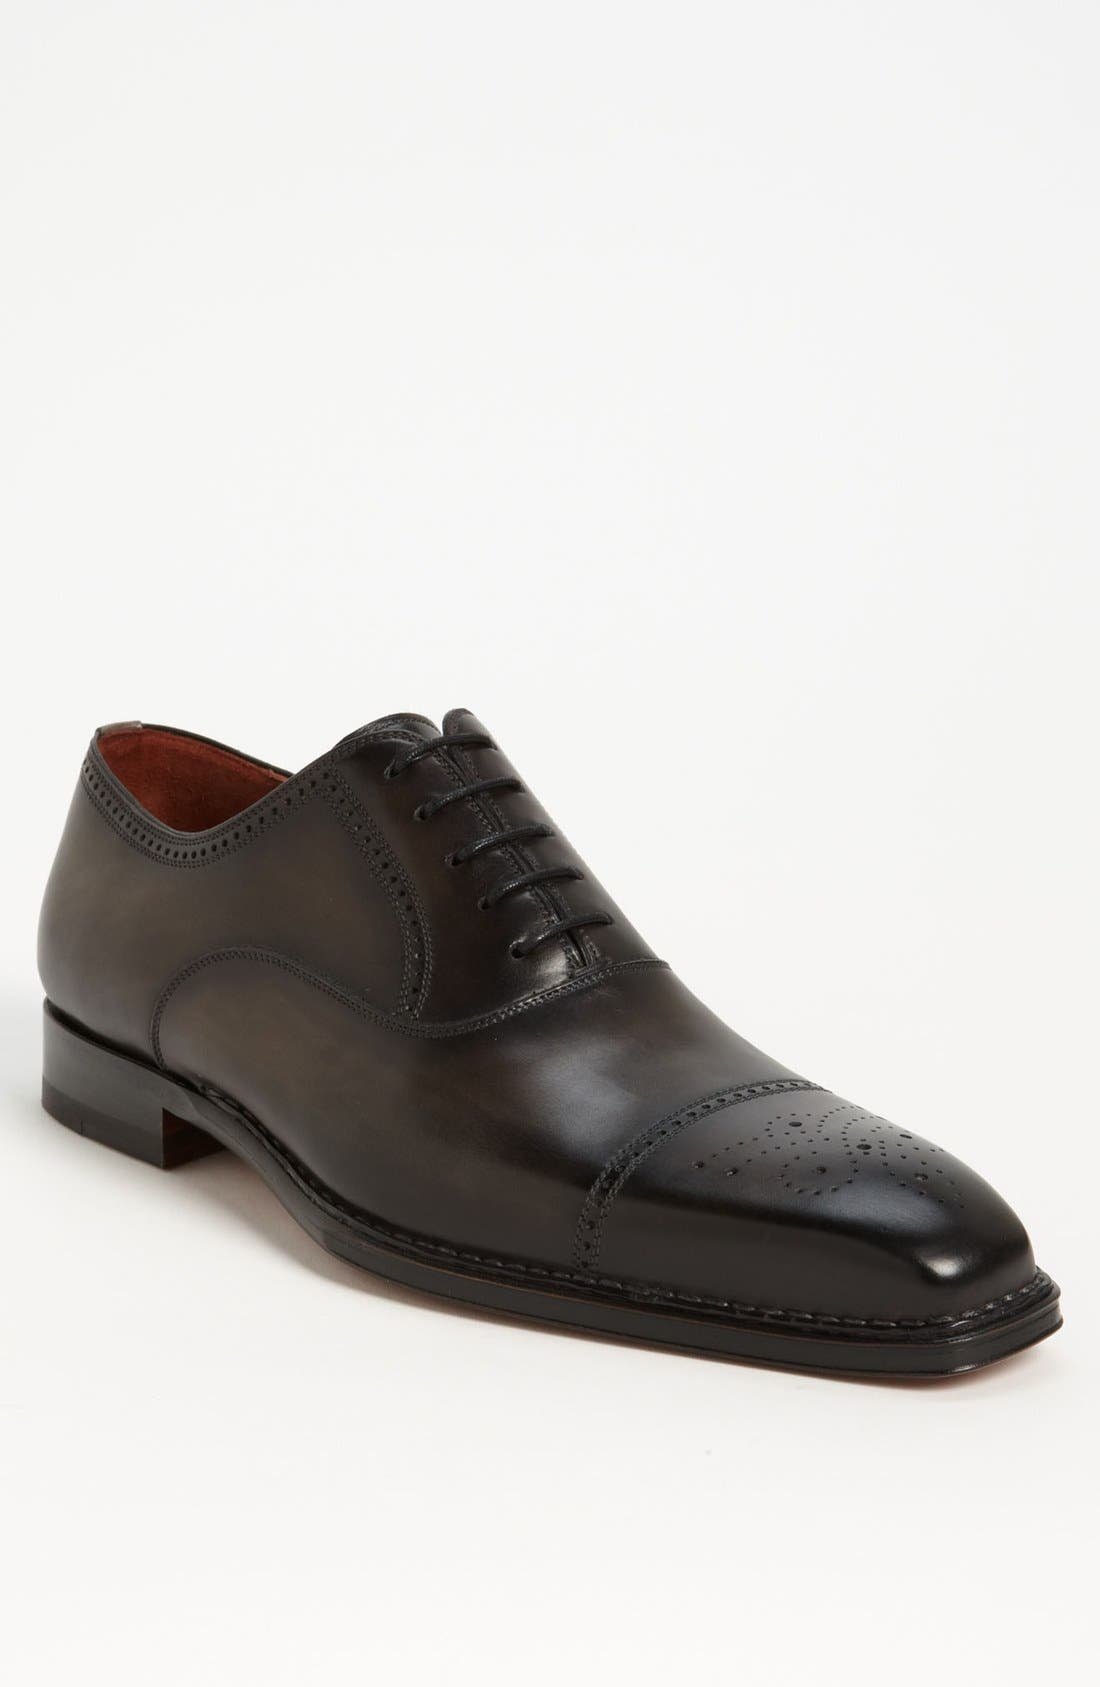 Alternate Image 1 Selected - Magnanni 'Seleccion - Valencia' Cap Toe Oxford